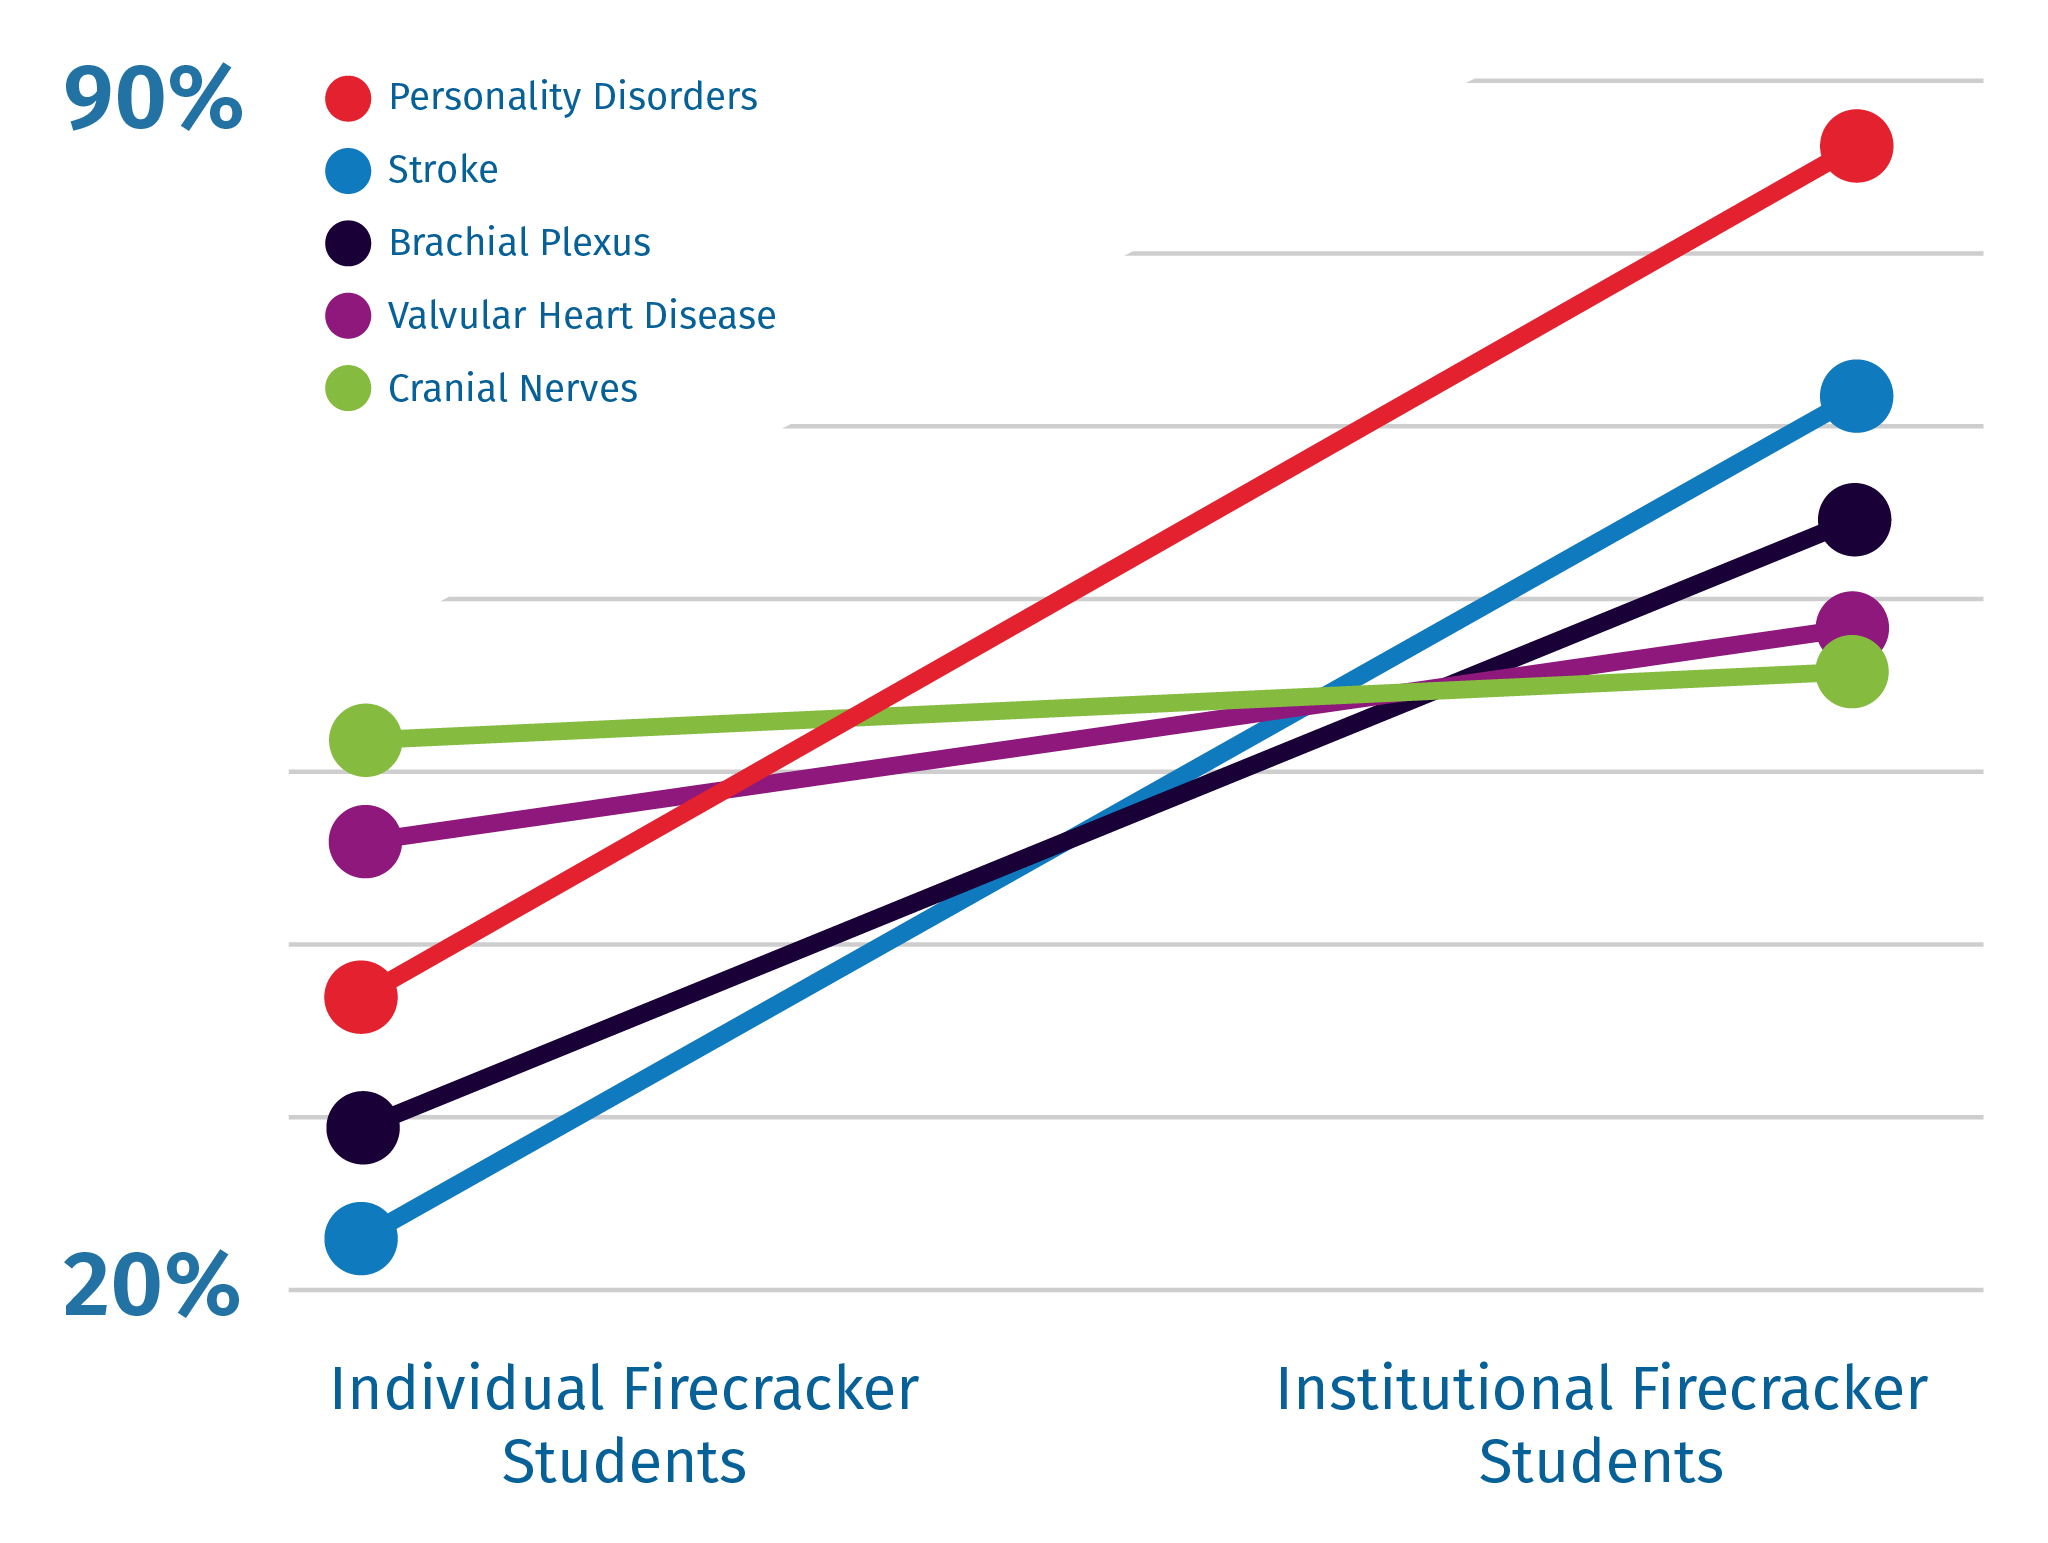 Chart illustrating comparative performance on all test-style questions for individual vs. institutional Firecracker students